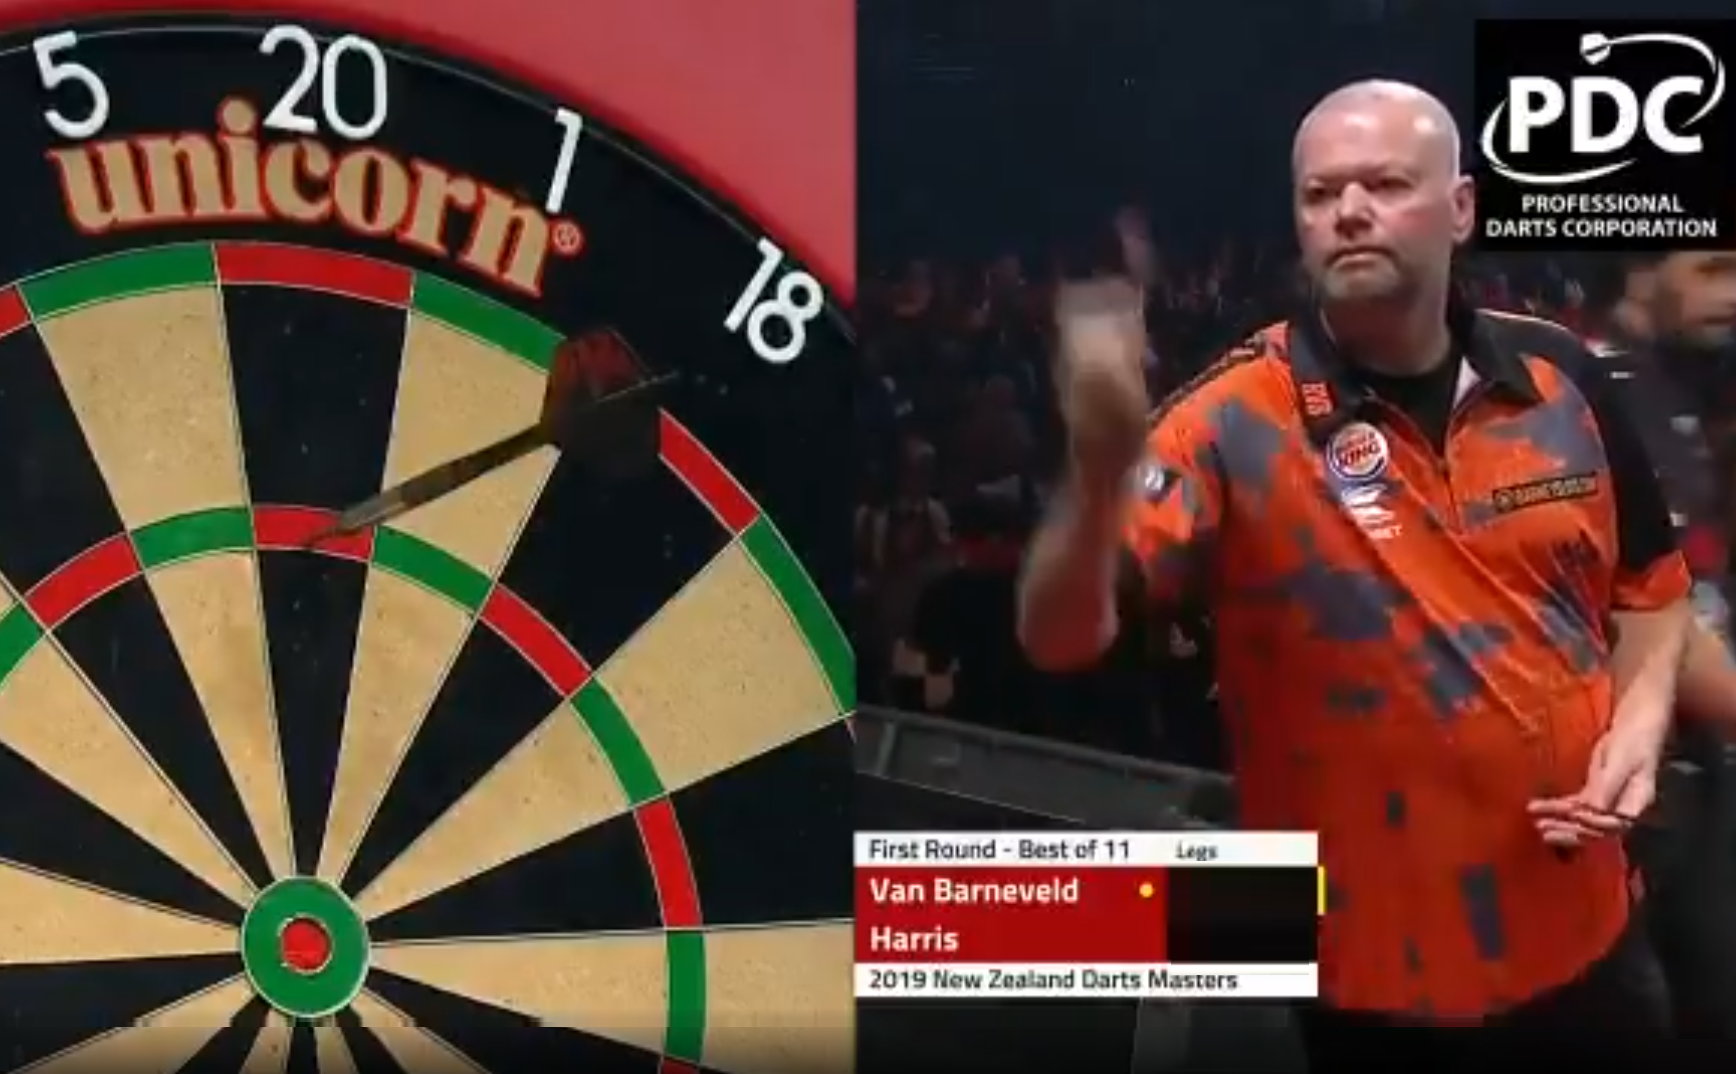 Watch Last Darts Van Barneveld v Harris At New Zealand Darts Masters